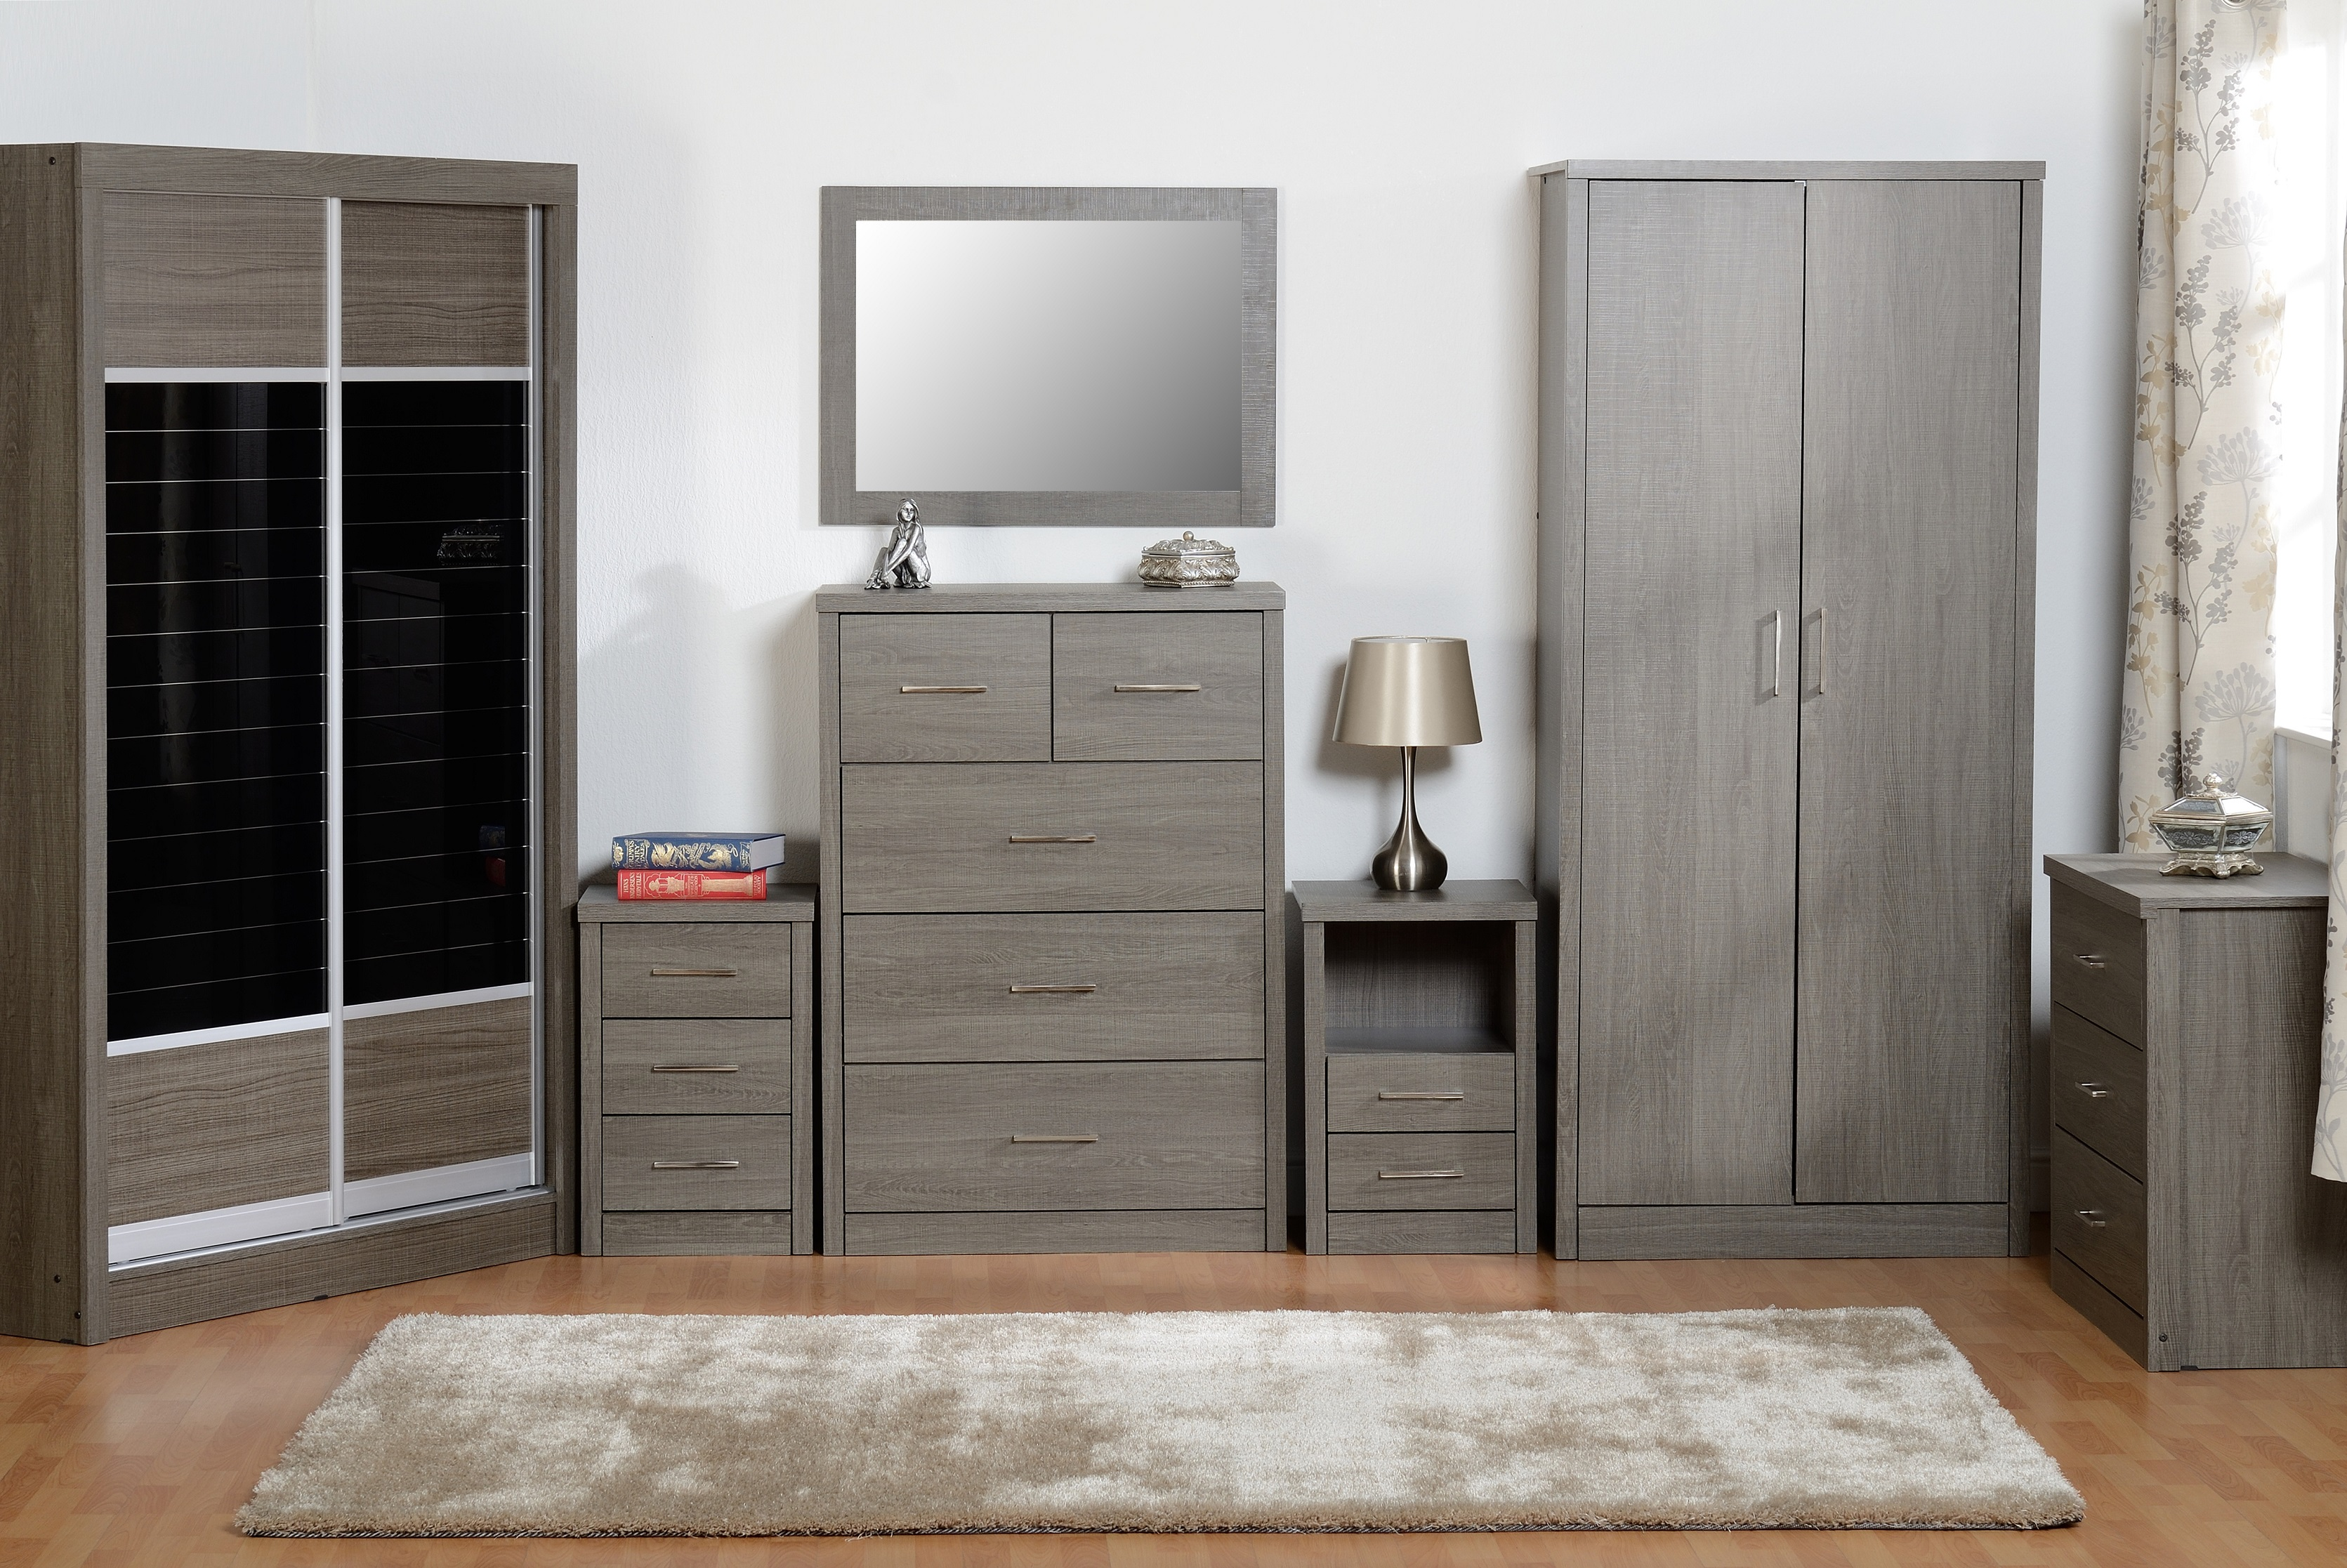 Details about Seconique Lisbon Black Bedroom Furniture Range - Wardrobe,  Drawers & Bedside